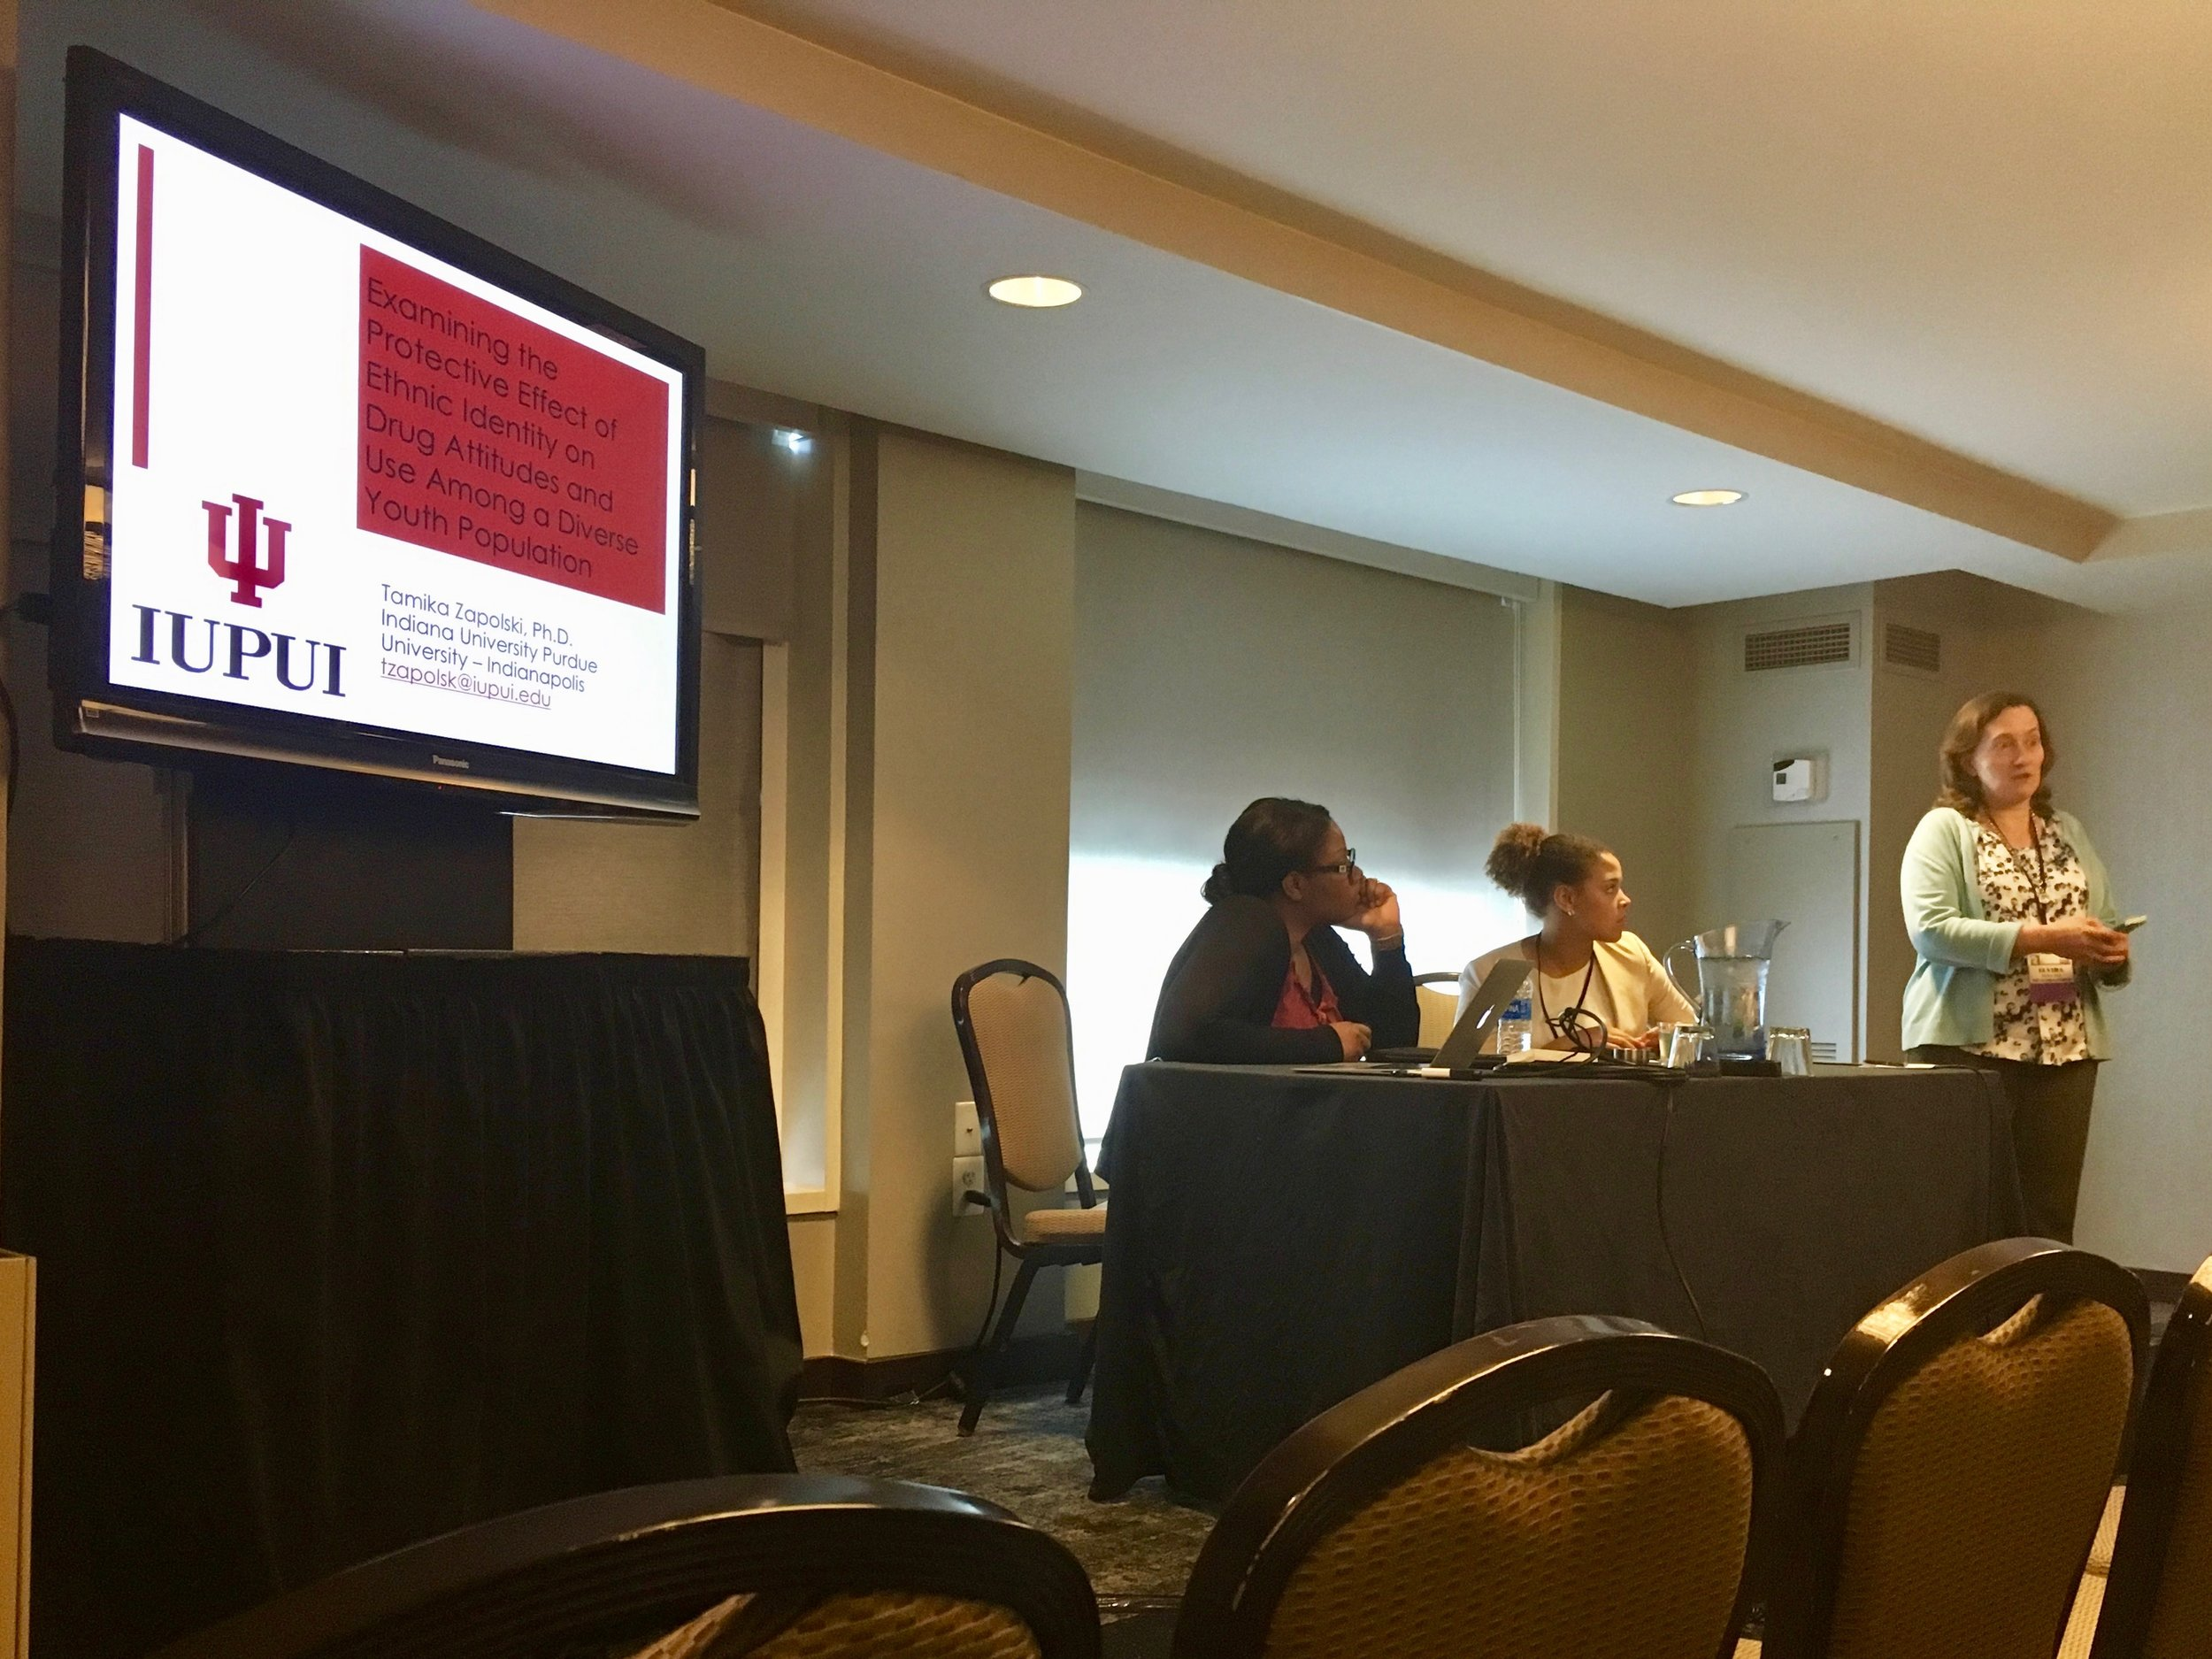 Dr. Zapolski and Devin present their papers at a symposium concerning racial/ethnic differences in predictors of substance use during adolescence.